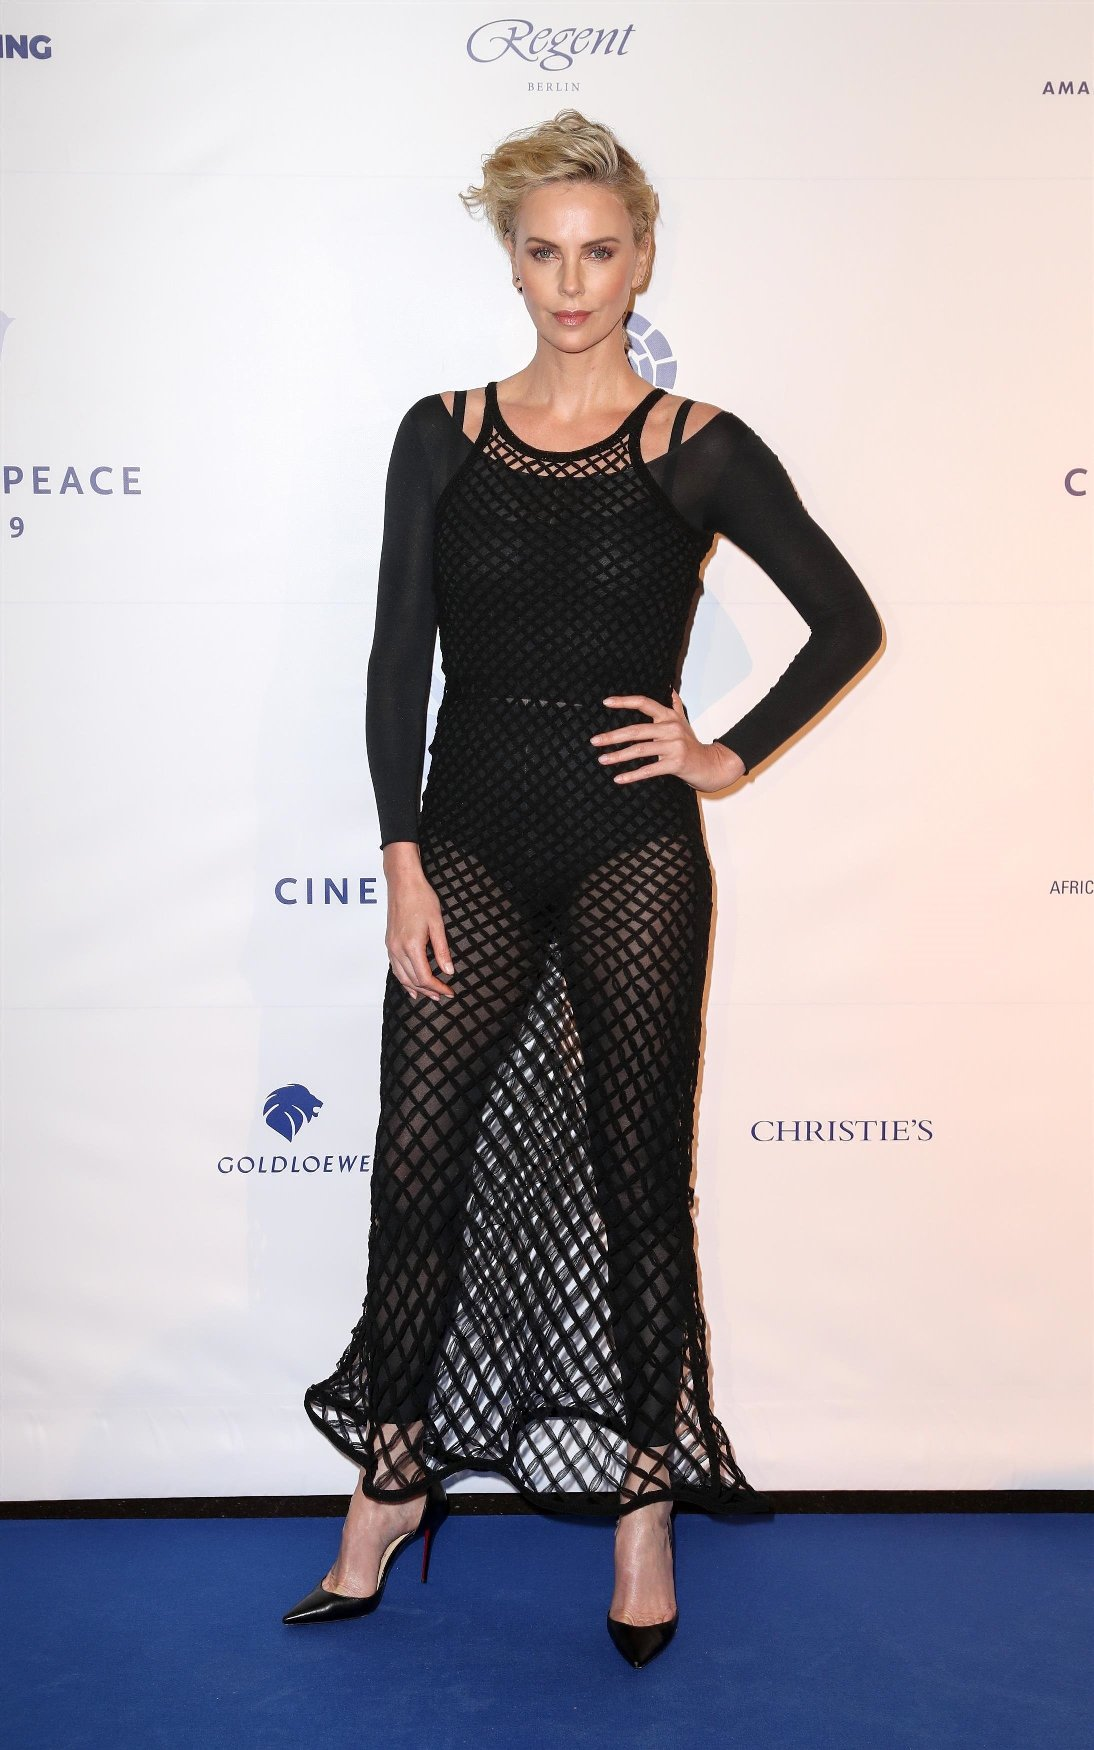 Berlin, GERMANY  - 10 February 2019, Berlin: Charlize Theron comes as a guest to Cinema for Peace at the China Club. Photo: Gerald Matzka/dpa-Zentralbild/ZB /MediaPunch ***FOR USA ONLY***  Pictured: Arts  BACKGRID USA 9 FEBRUARY 2019, Image: 413113518, License: Rights-managed, Restrictions: , Model Release: no, Credit line: Profimedia, Backgrid USA